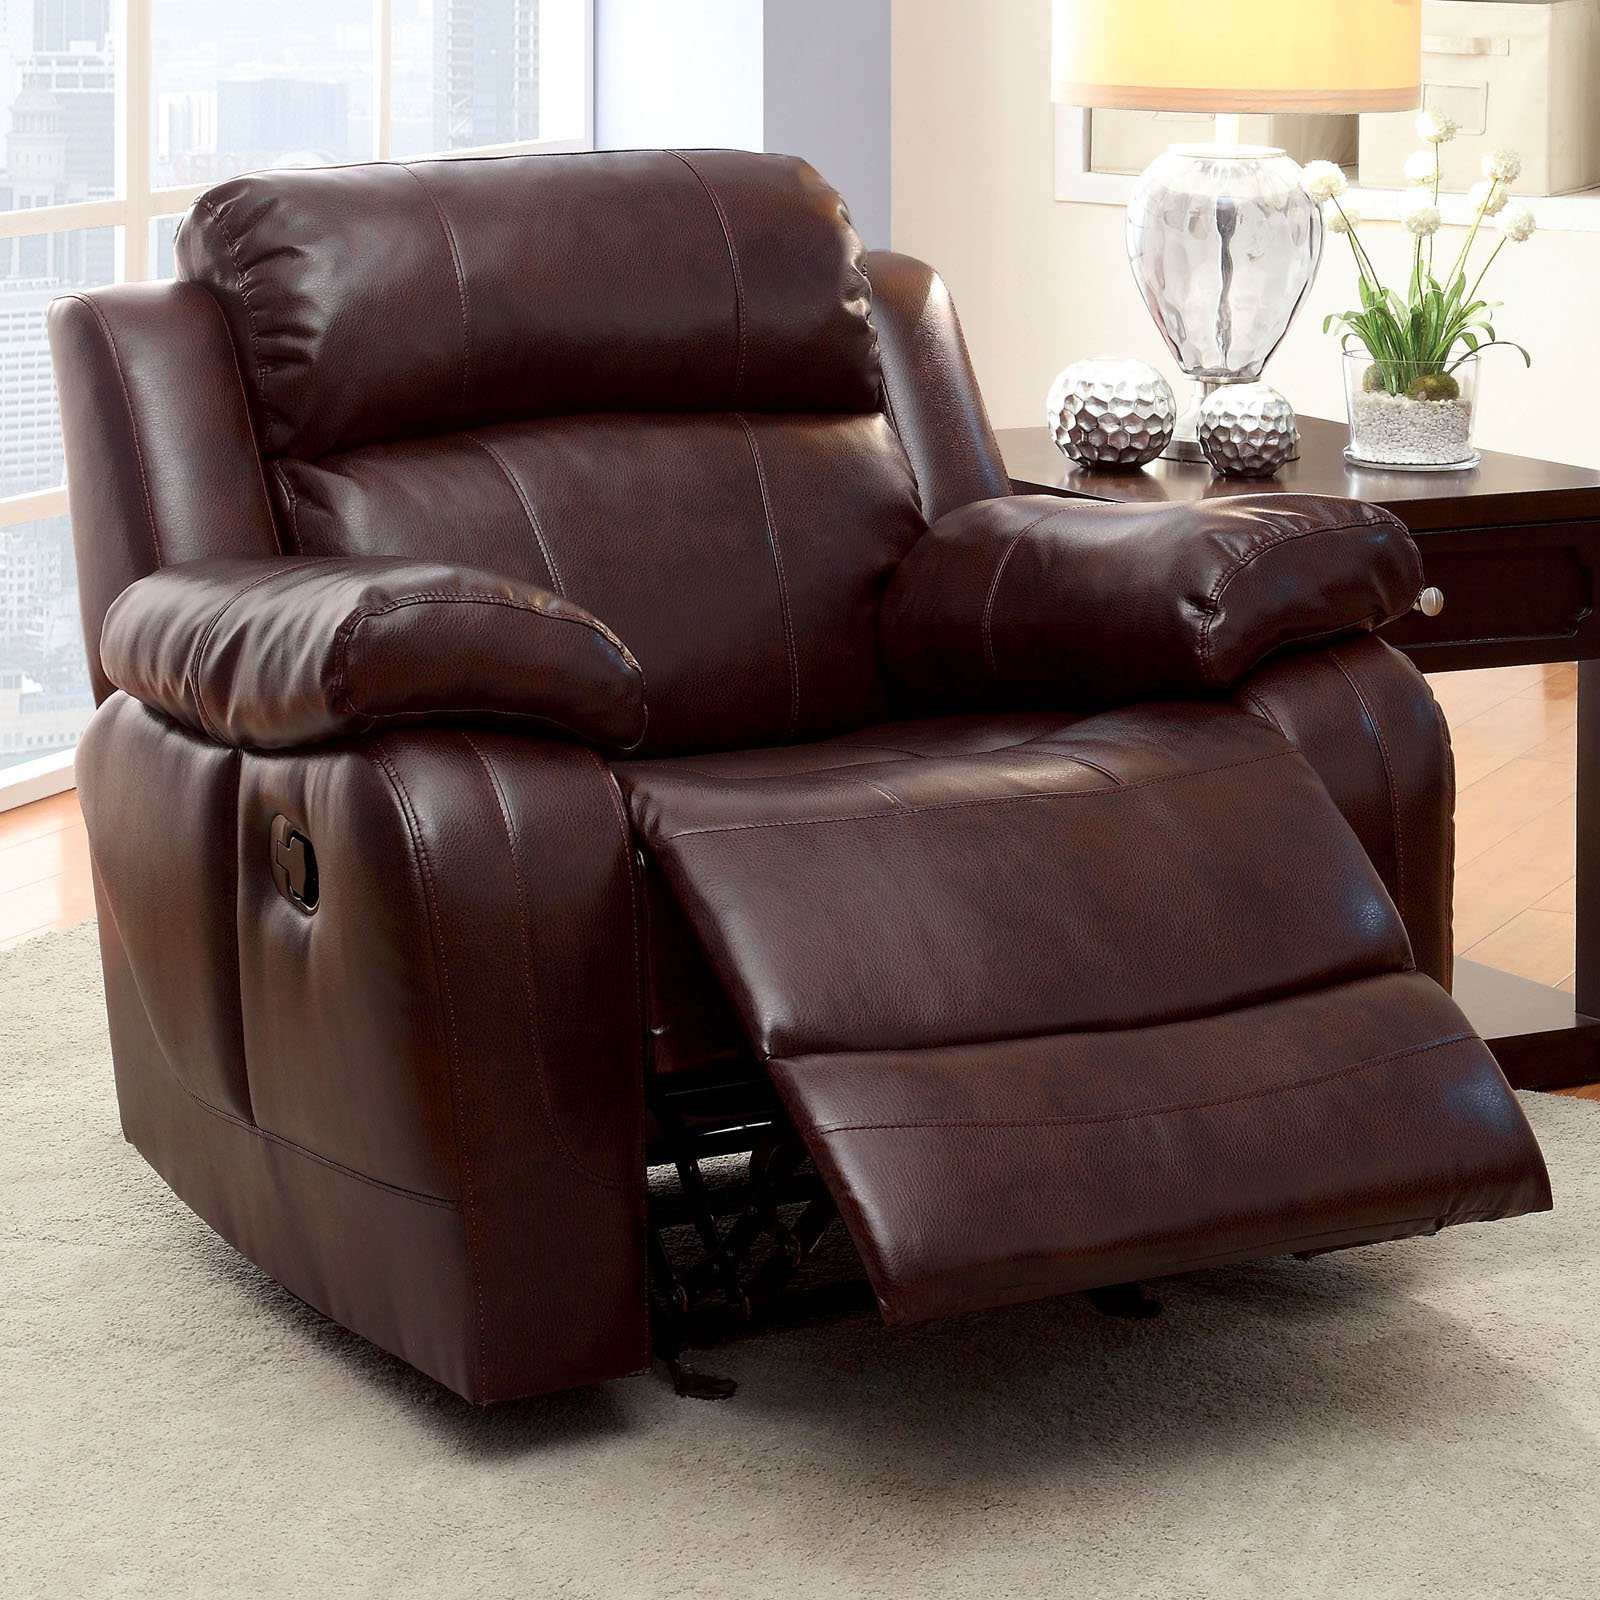 Outdoor Hartwig Furniture Of America Hartwig Leather Recliner